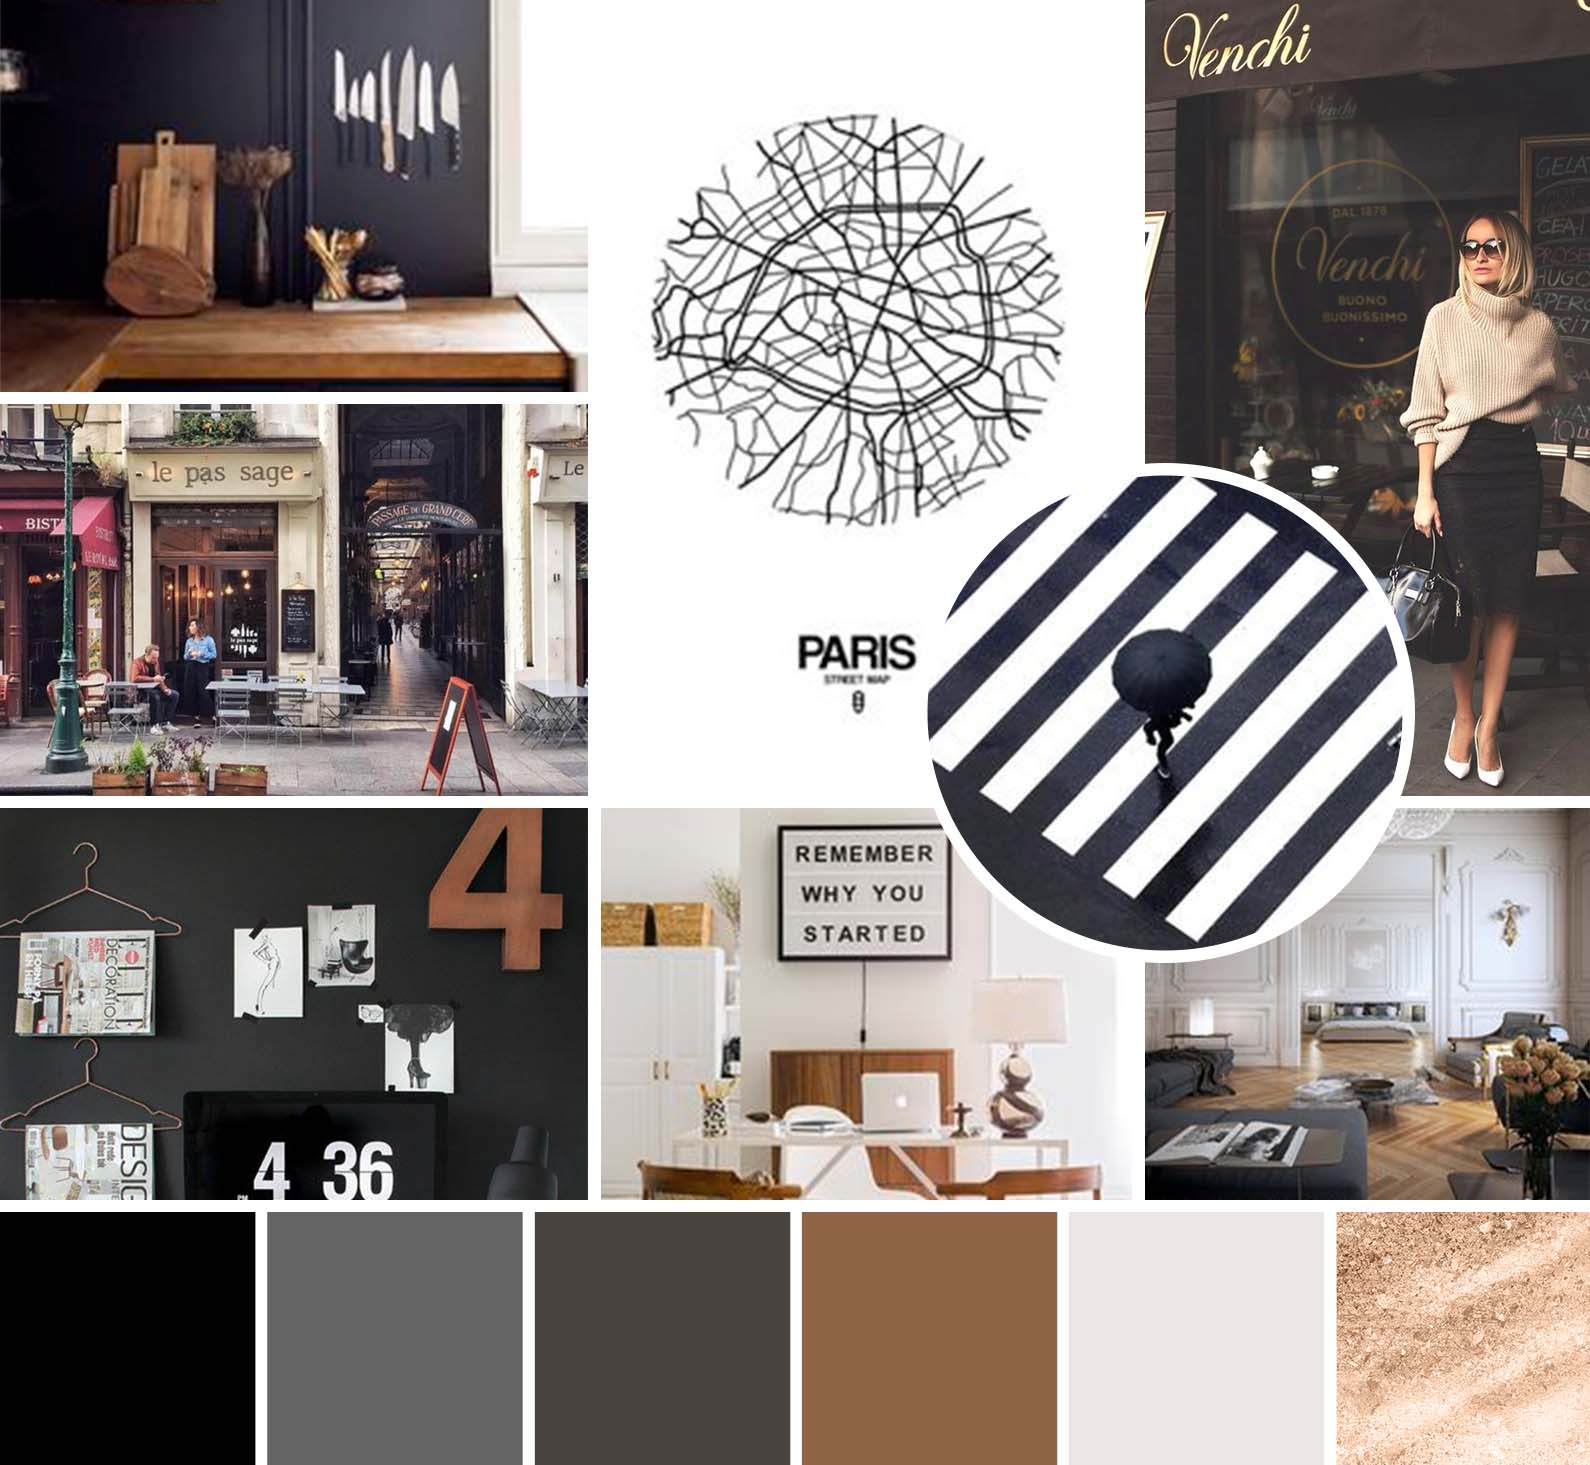 mood board for a photographer with warm browns, sophisticated blacks, and a touch of sparkle for a Parisian, high end feel